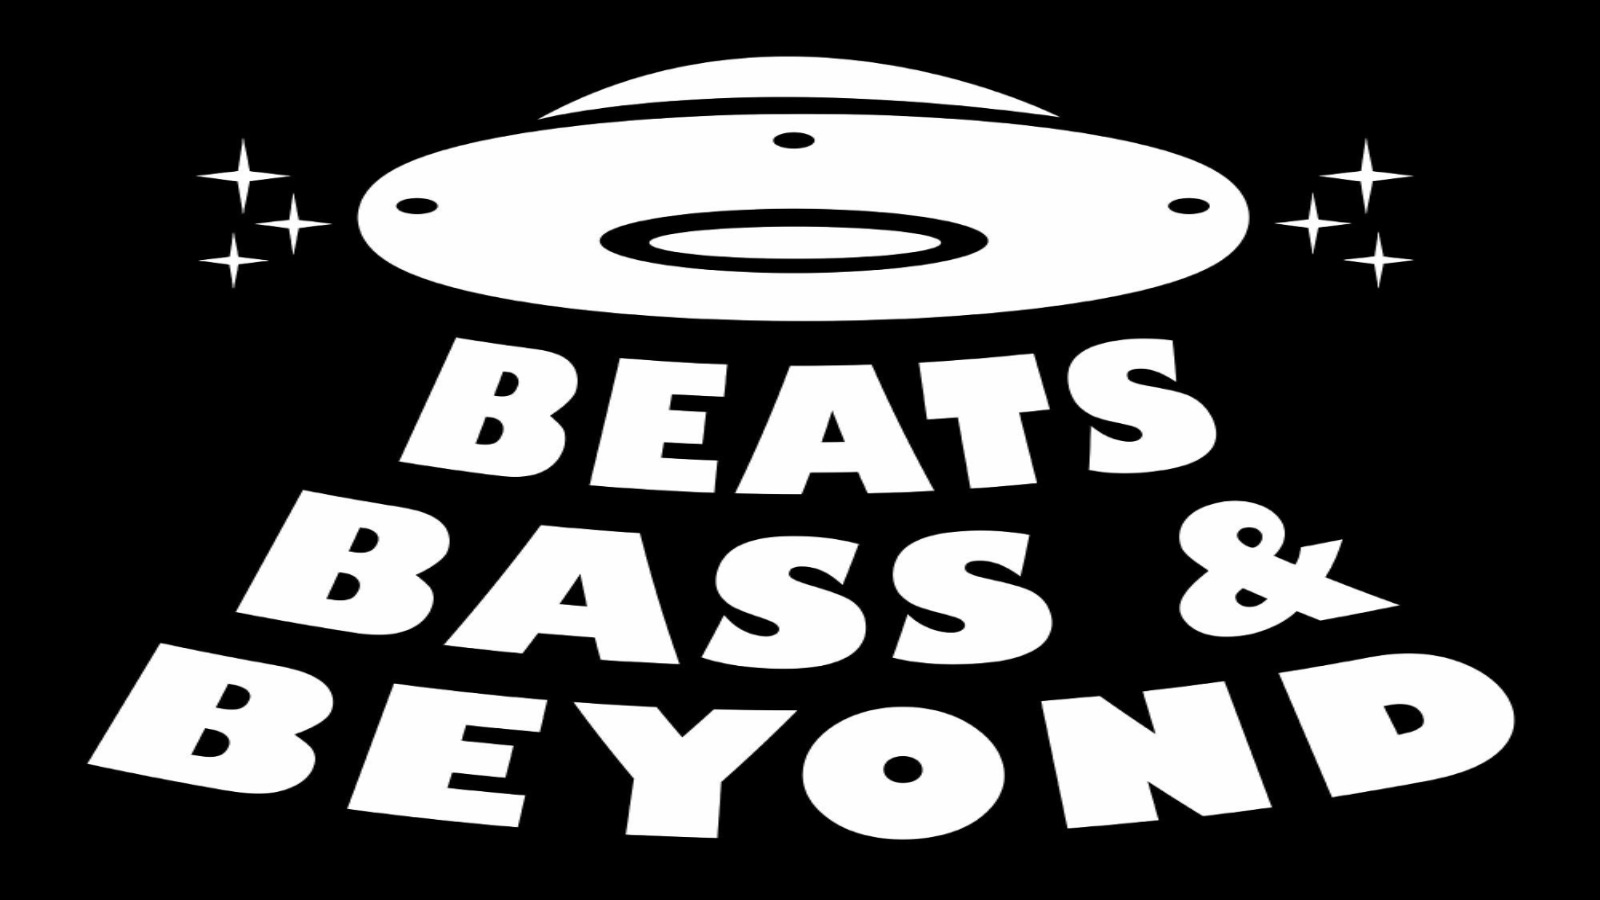 Mr. Solve on Beats, Bass, and Beyond